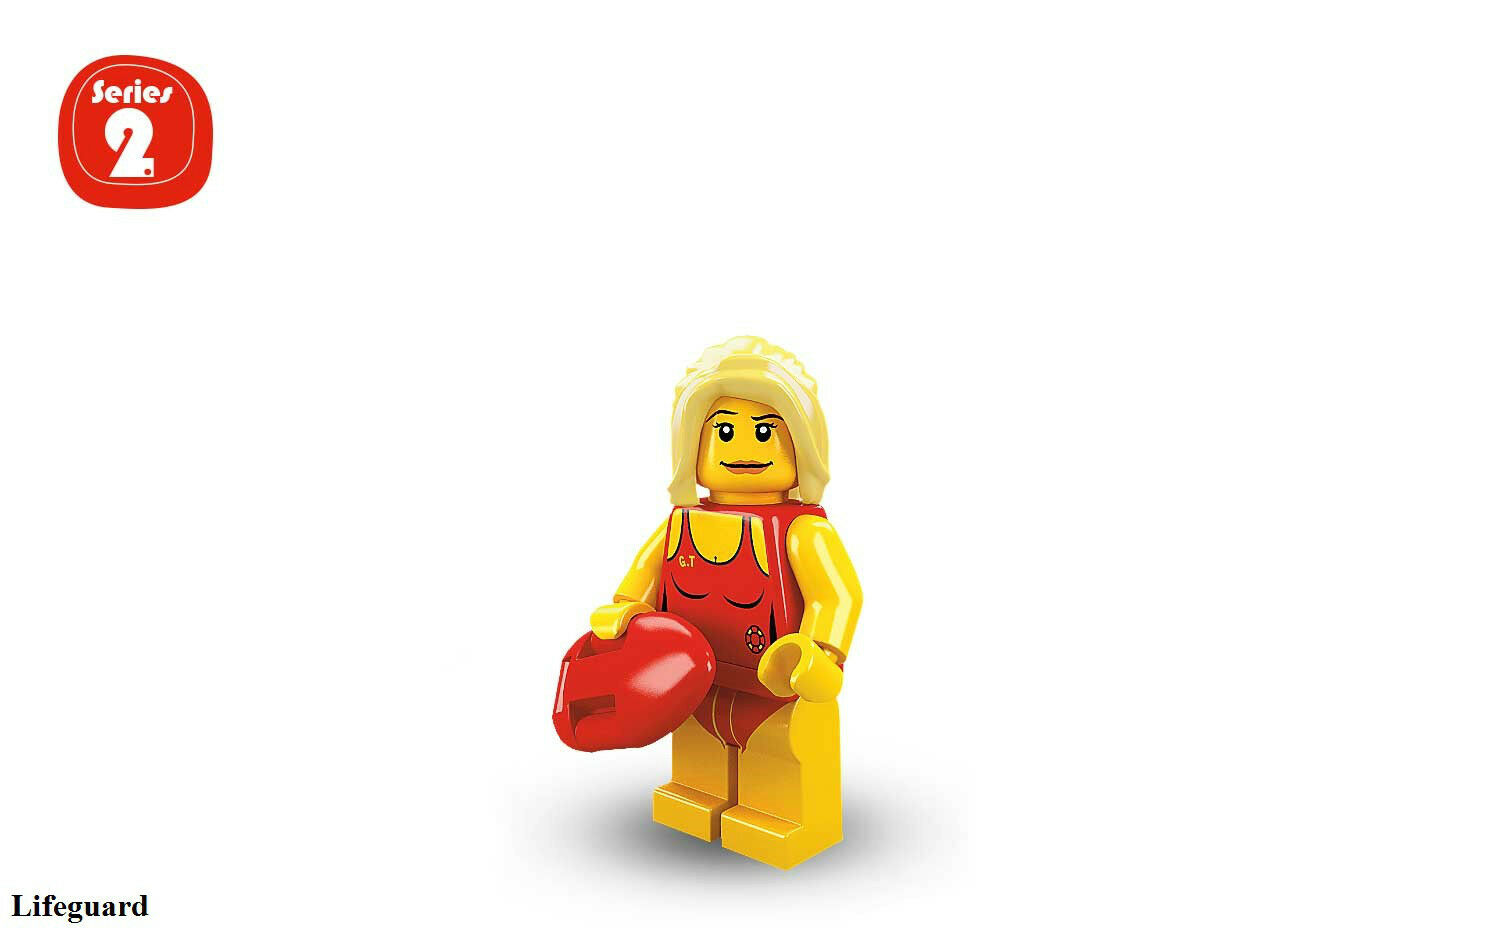 lego minifigures series 2 - HD 1500×1500